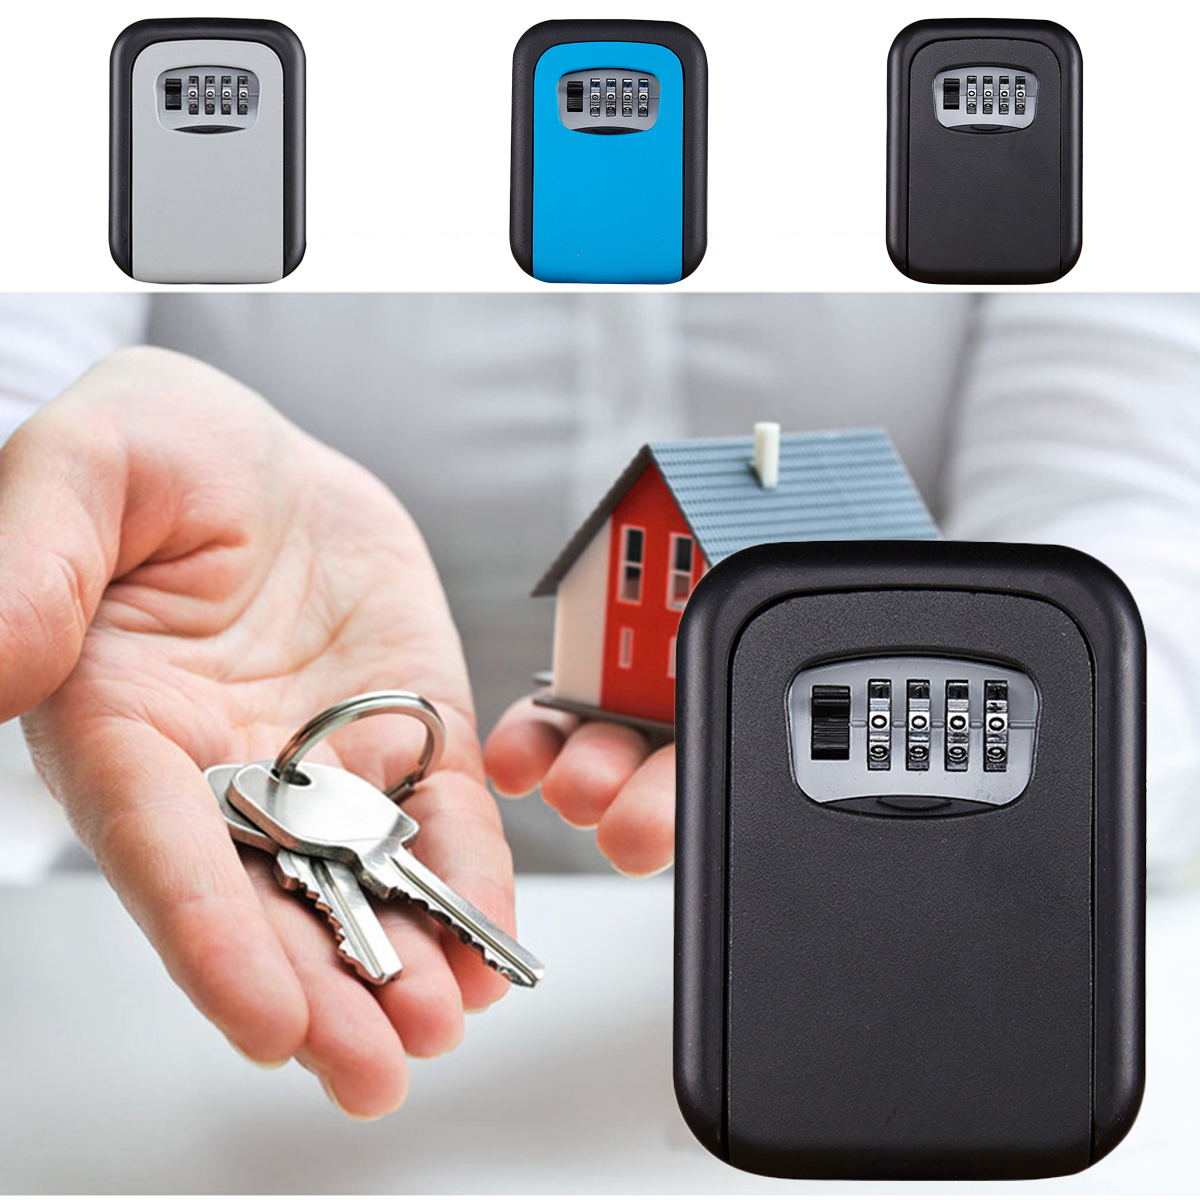 Larger Capacity Digit Code Lock Key Safe Box Outdoor Storage Case Wall Mounted Anti-theft